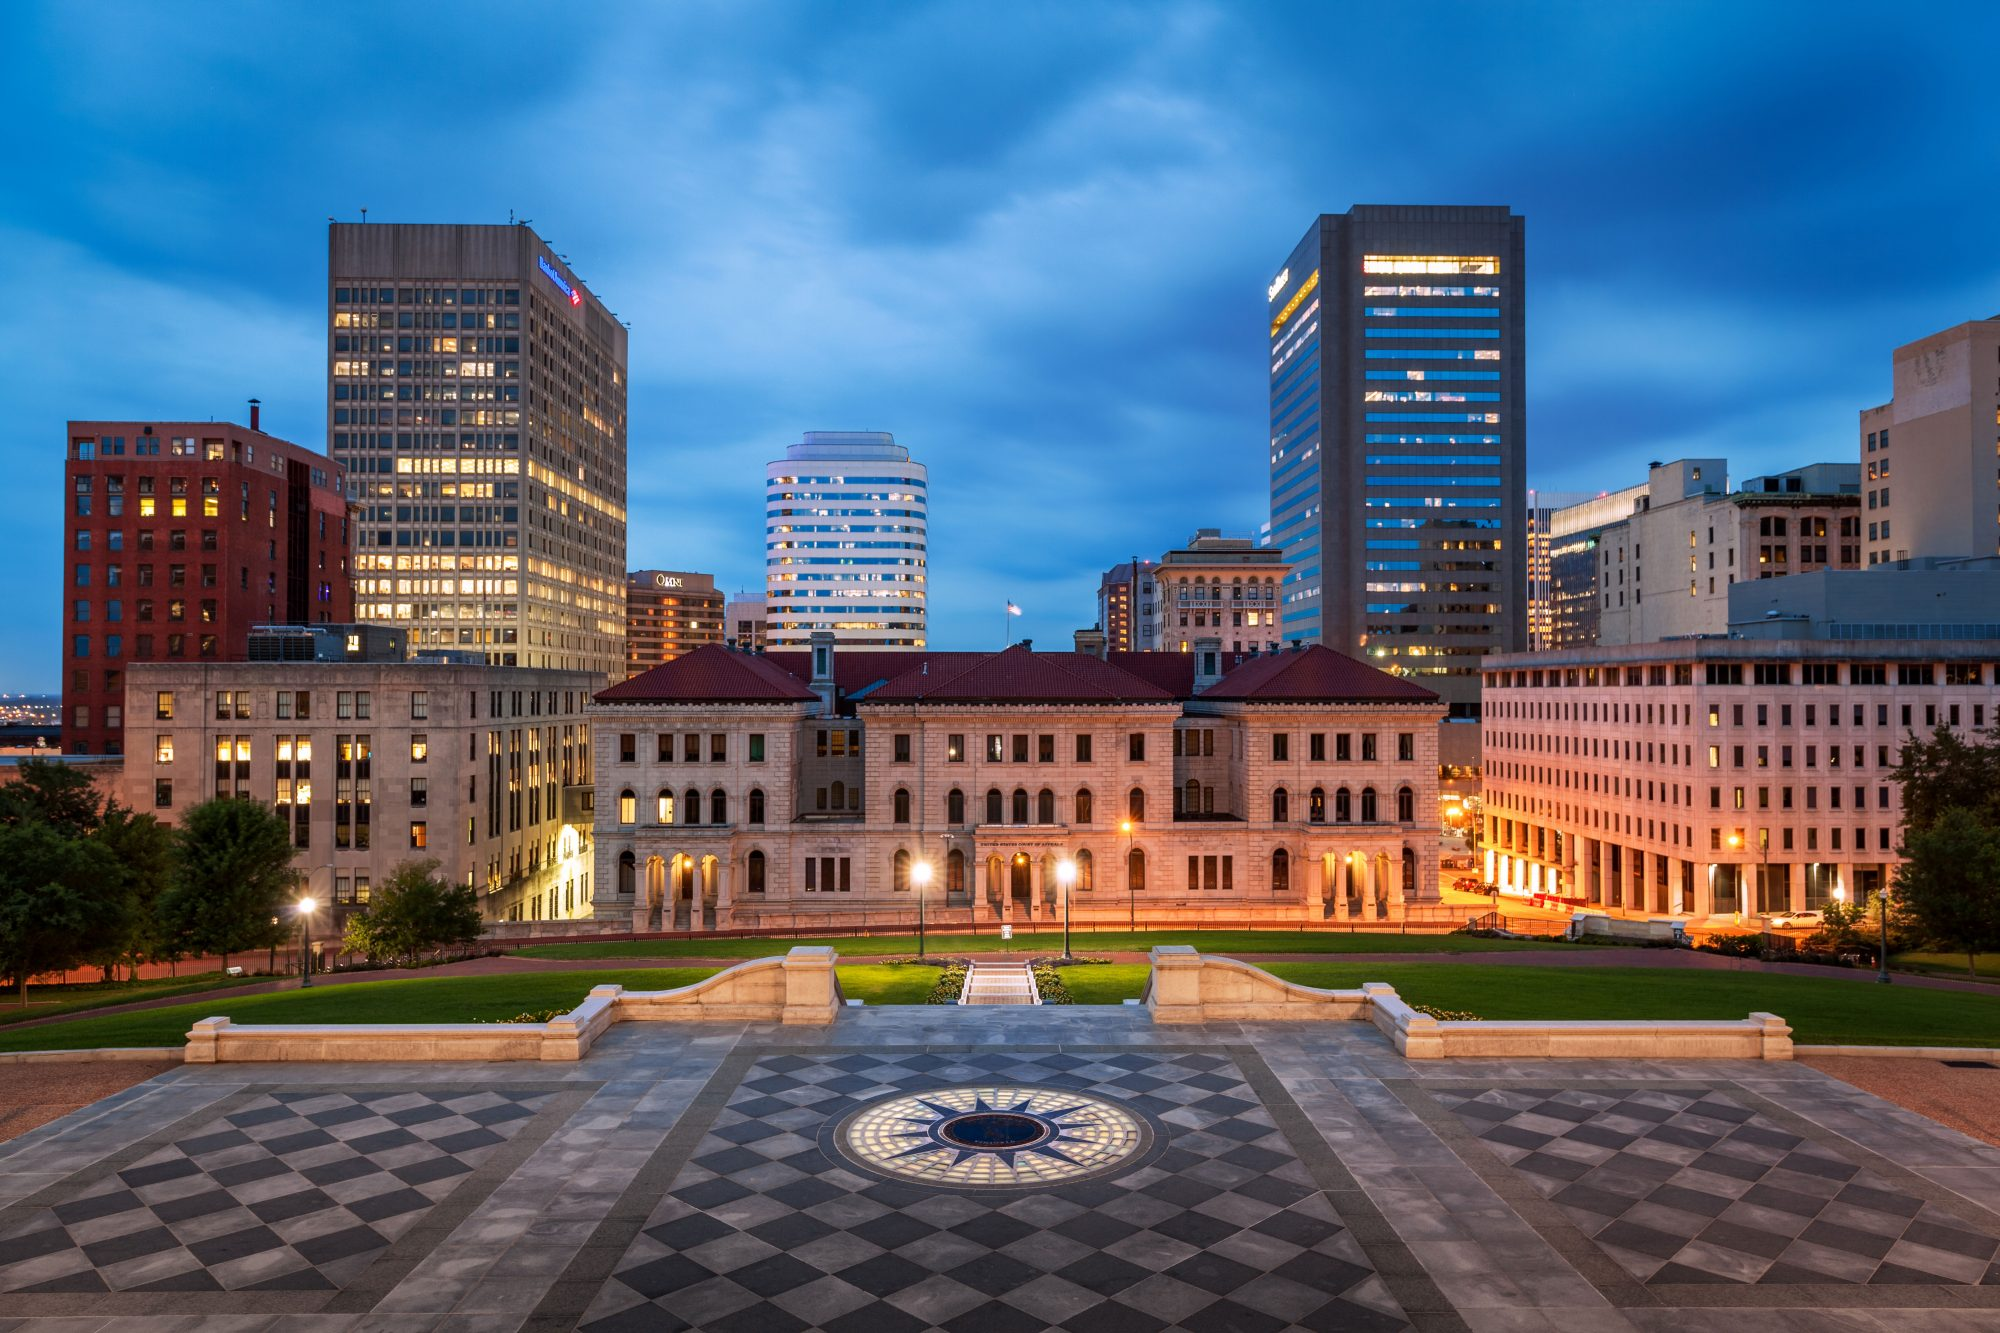 9. Richmond, Virginia